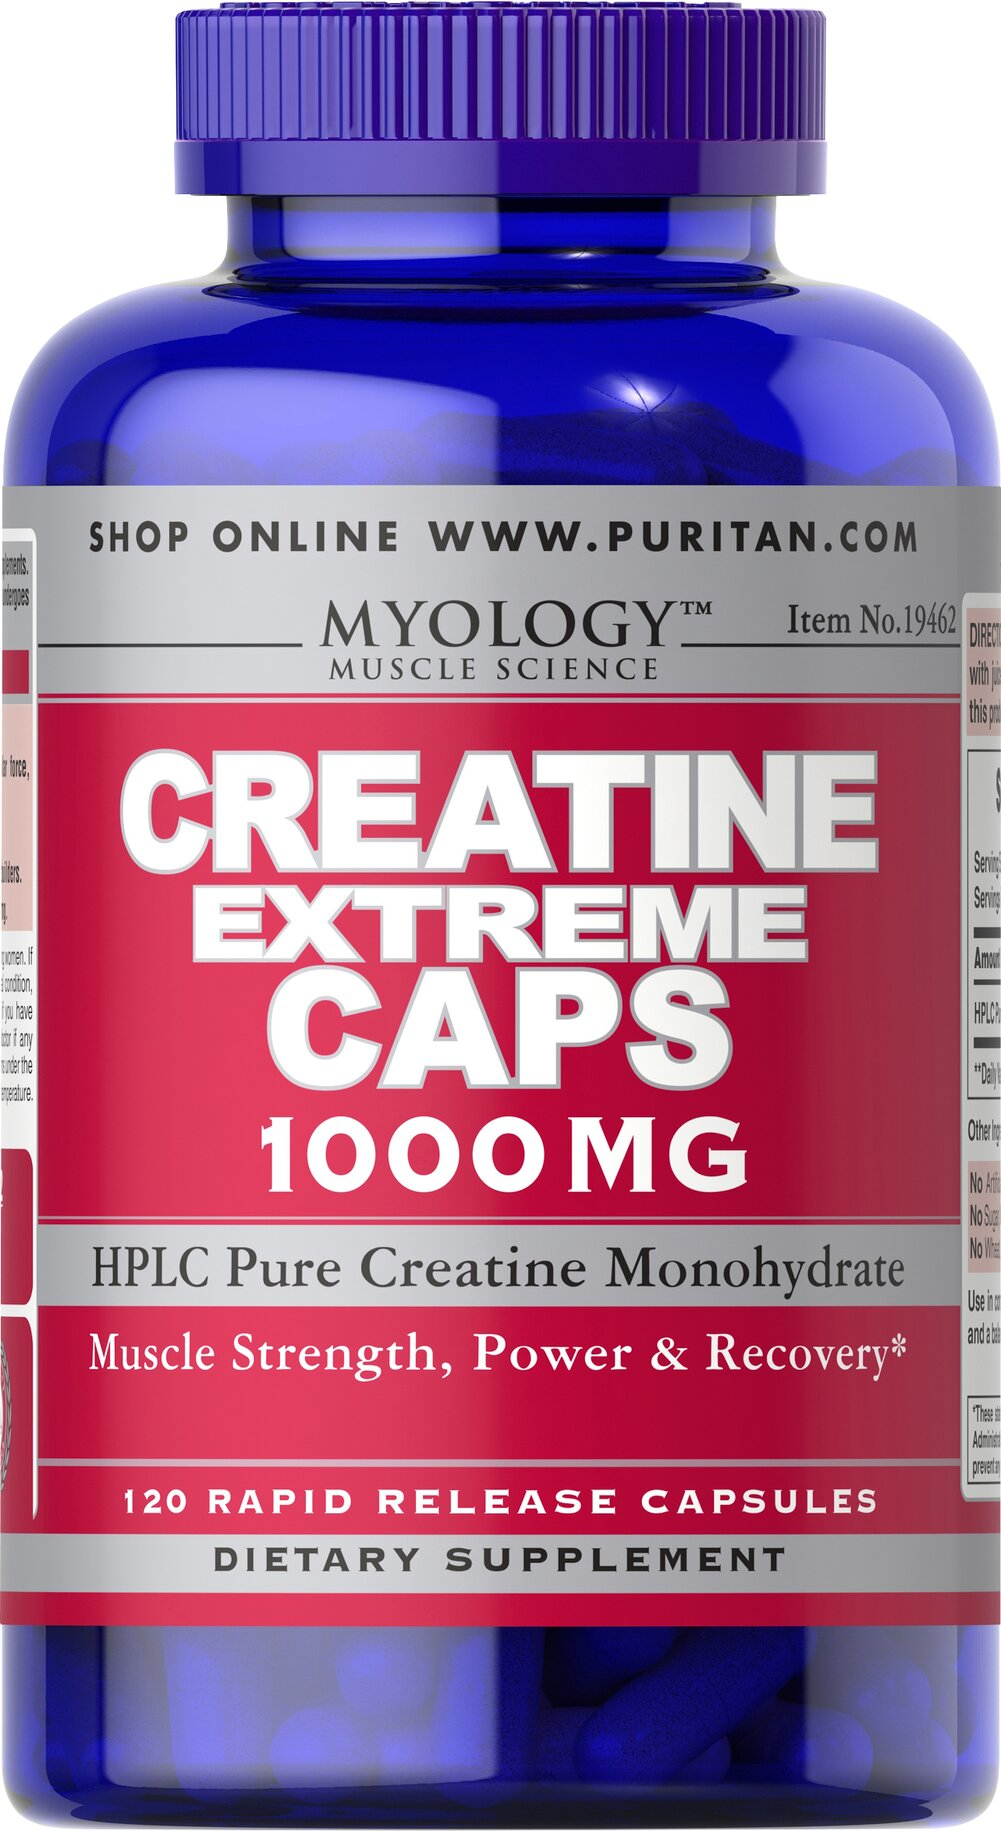 Creatine Extreme 1000 mg <p>Enhances the ability of muscles to produce higher muscular force, especially during short bouts of maximal exercise.**</p><p>Helps promote athletic performance**</p><p>Excellent supplemental choice for athletes and hardcore bodybuilders.</p><p>Each capsule contains HPLC Pure Creatine Monohydrate 1000 mg.</p> 120 Capsules 1000 mg $17.99